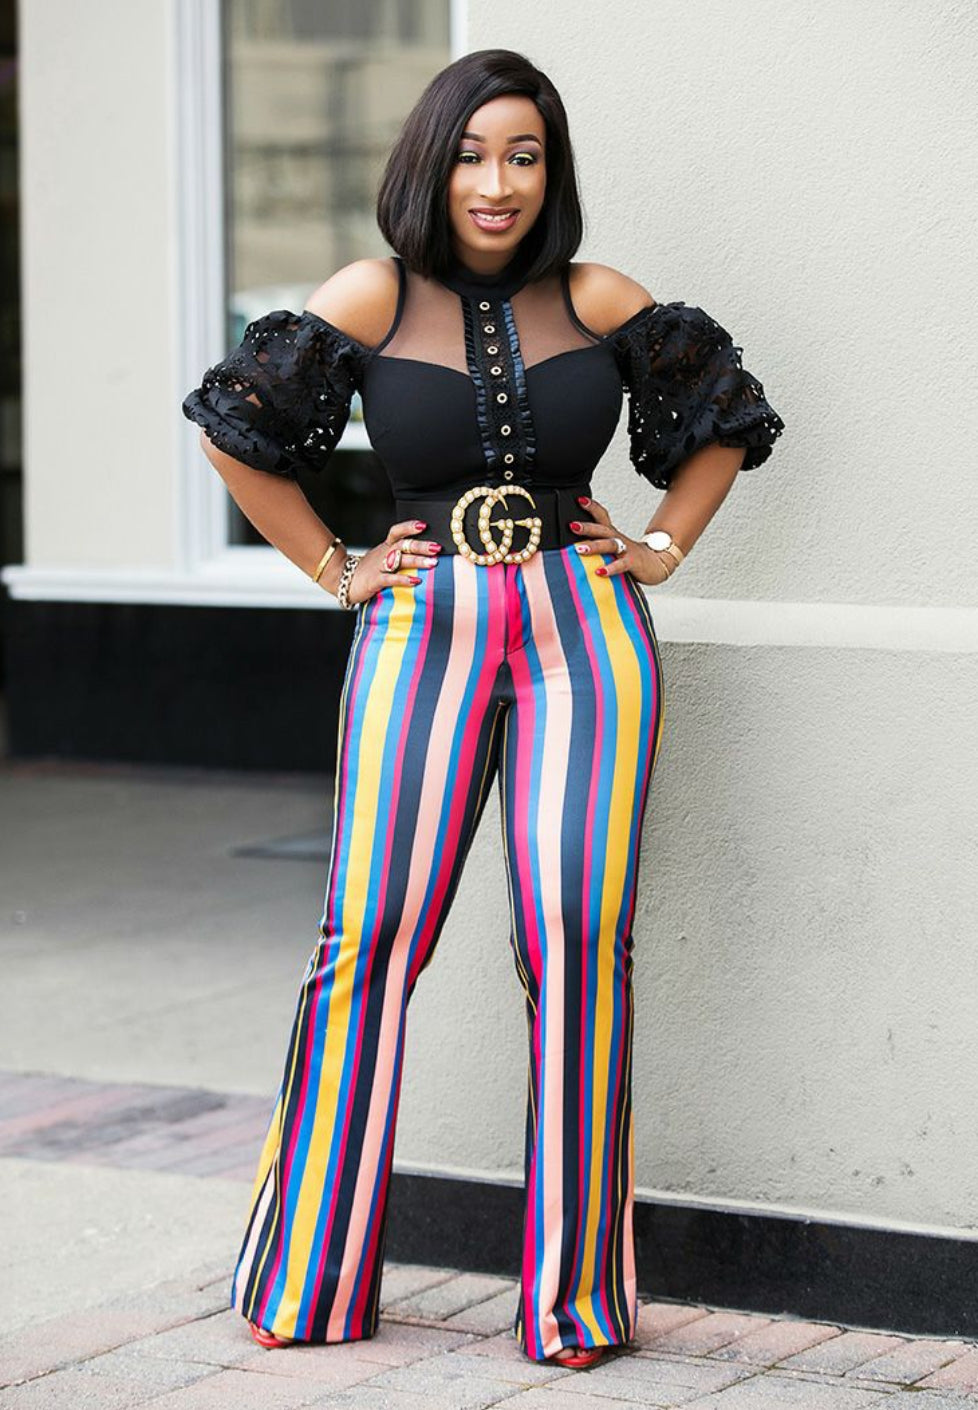 Iris Beauty- High Waist Multicolor Stripe Pants (Final Sale! No Returns! No Exchange!)